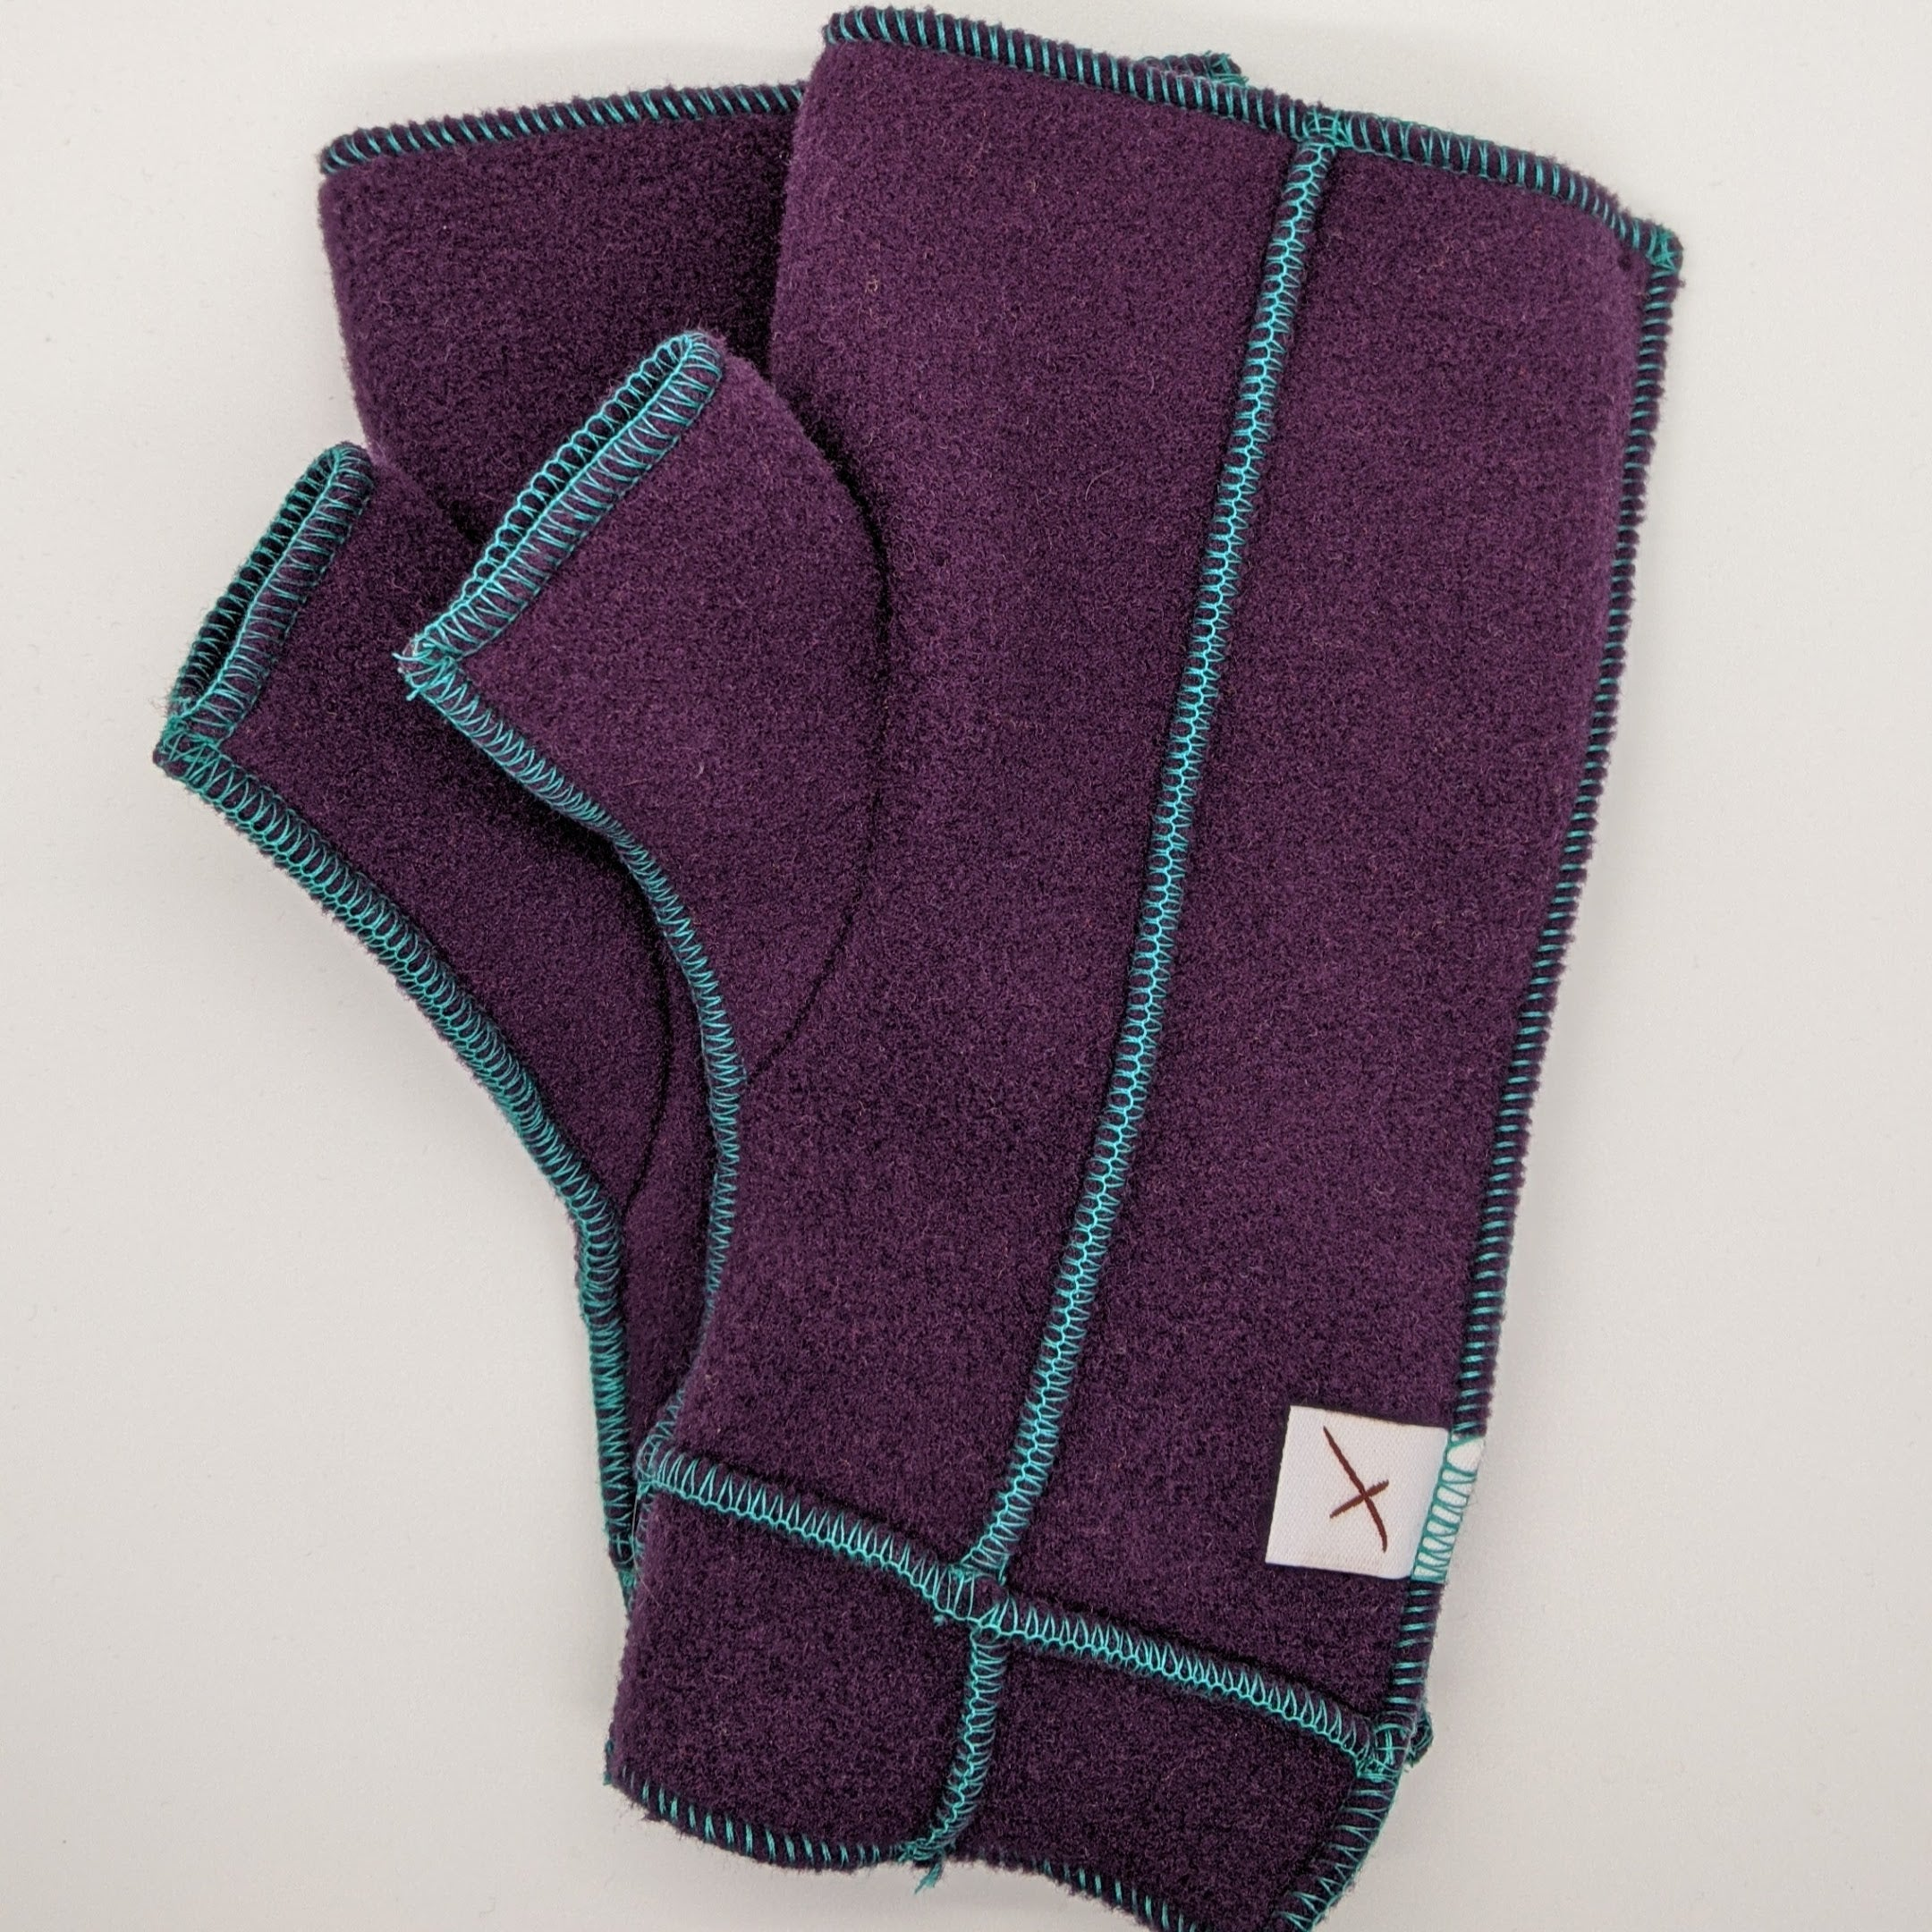 Classic Xmittens: Plum with Teal Thread